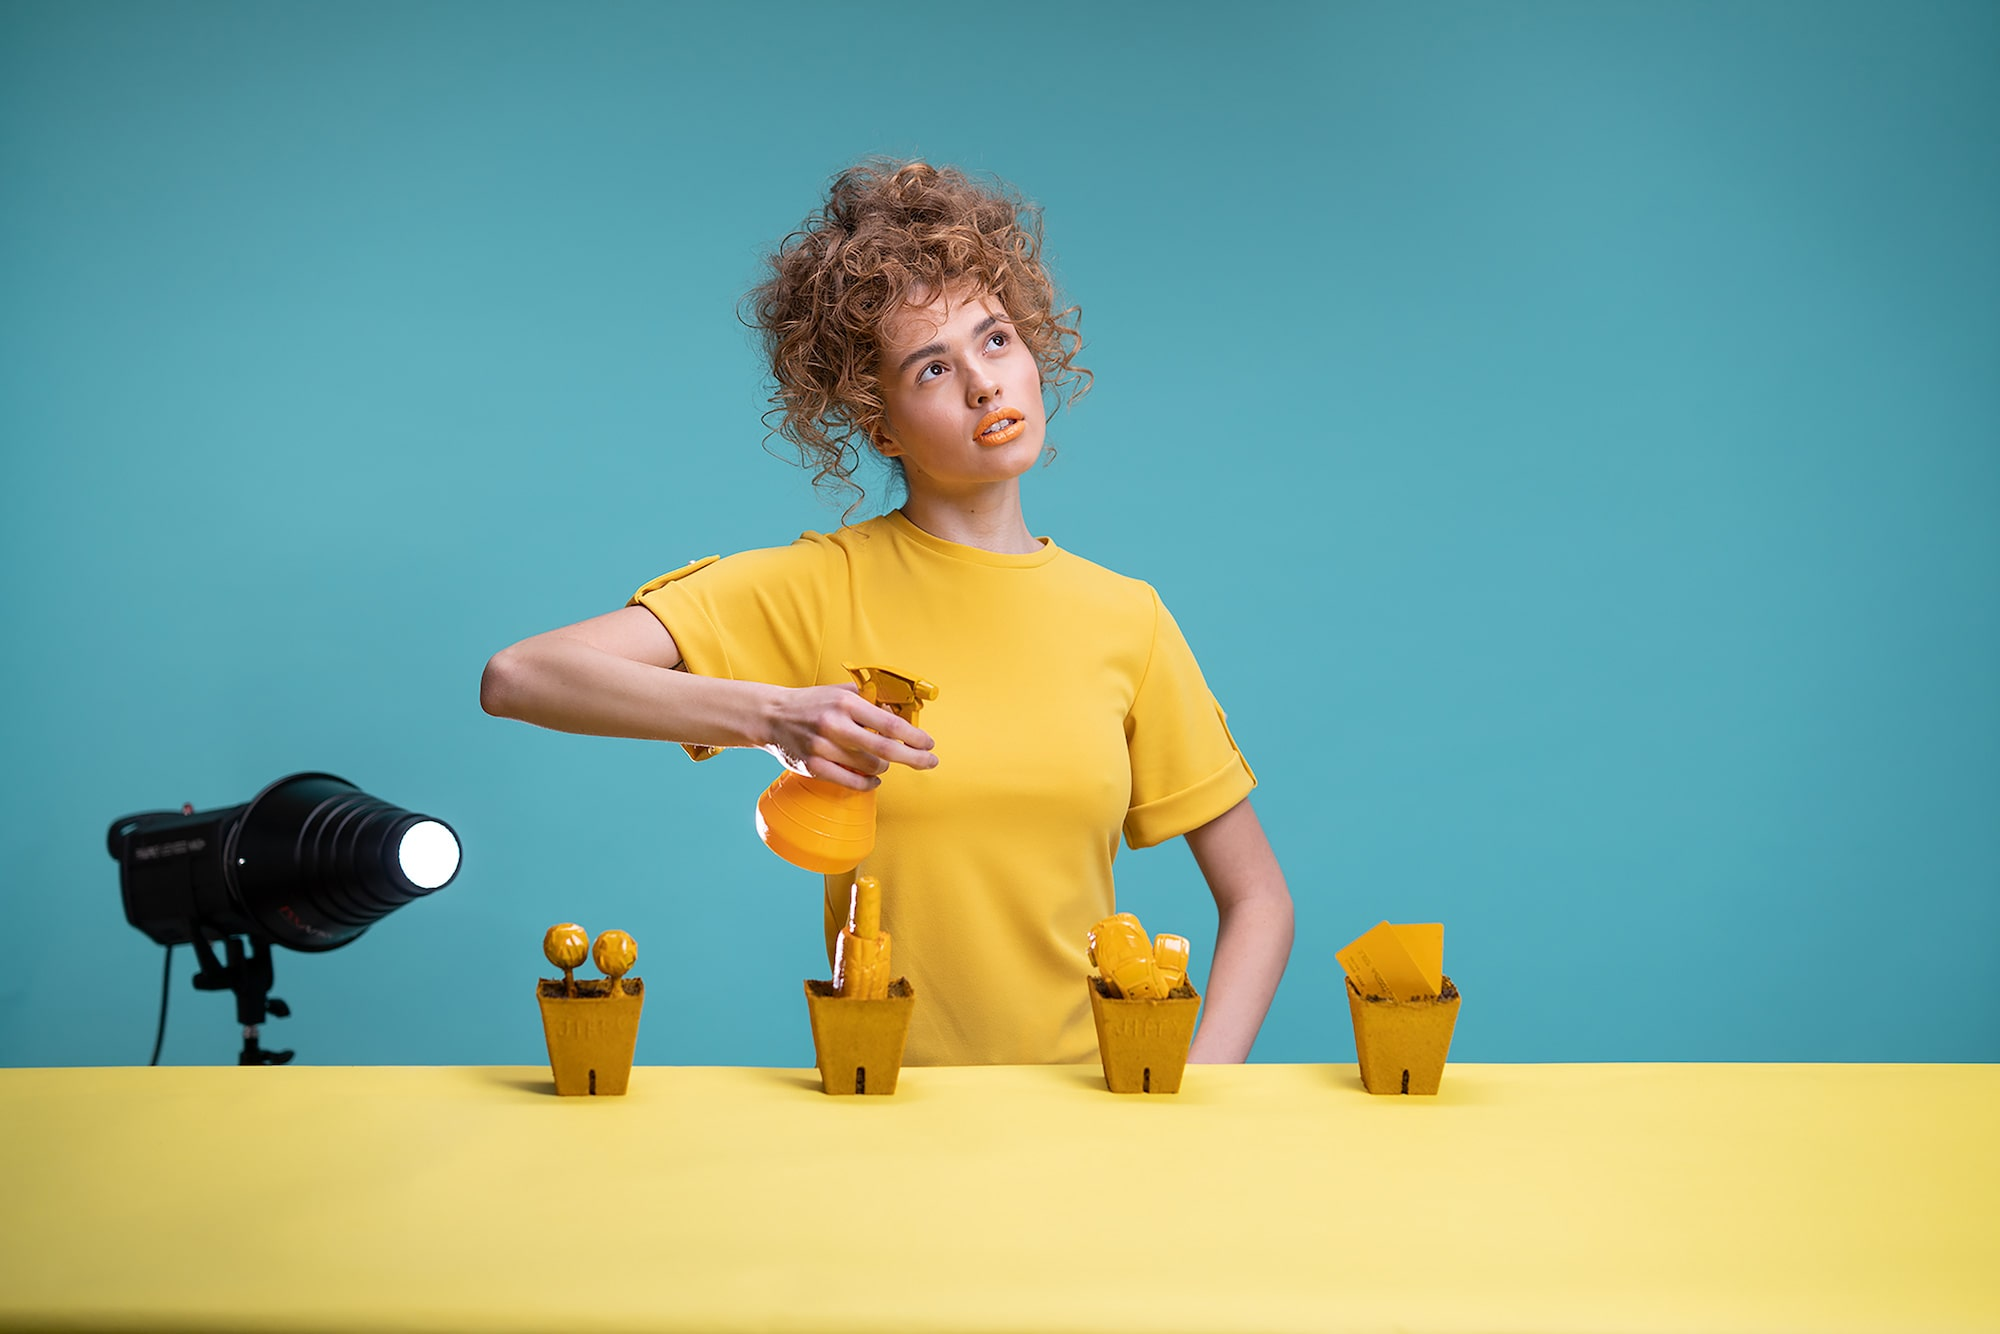 virgo haan sony alpha 7RII lady wearing a yellow teeshirt in front of a yellow table holding a matching water sprayer